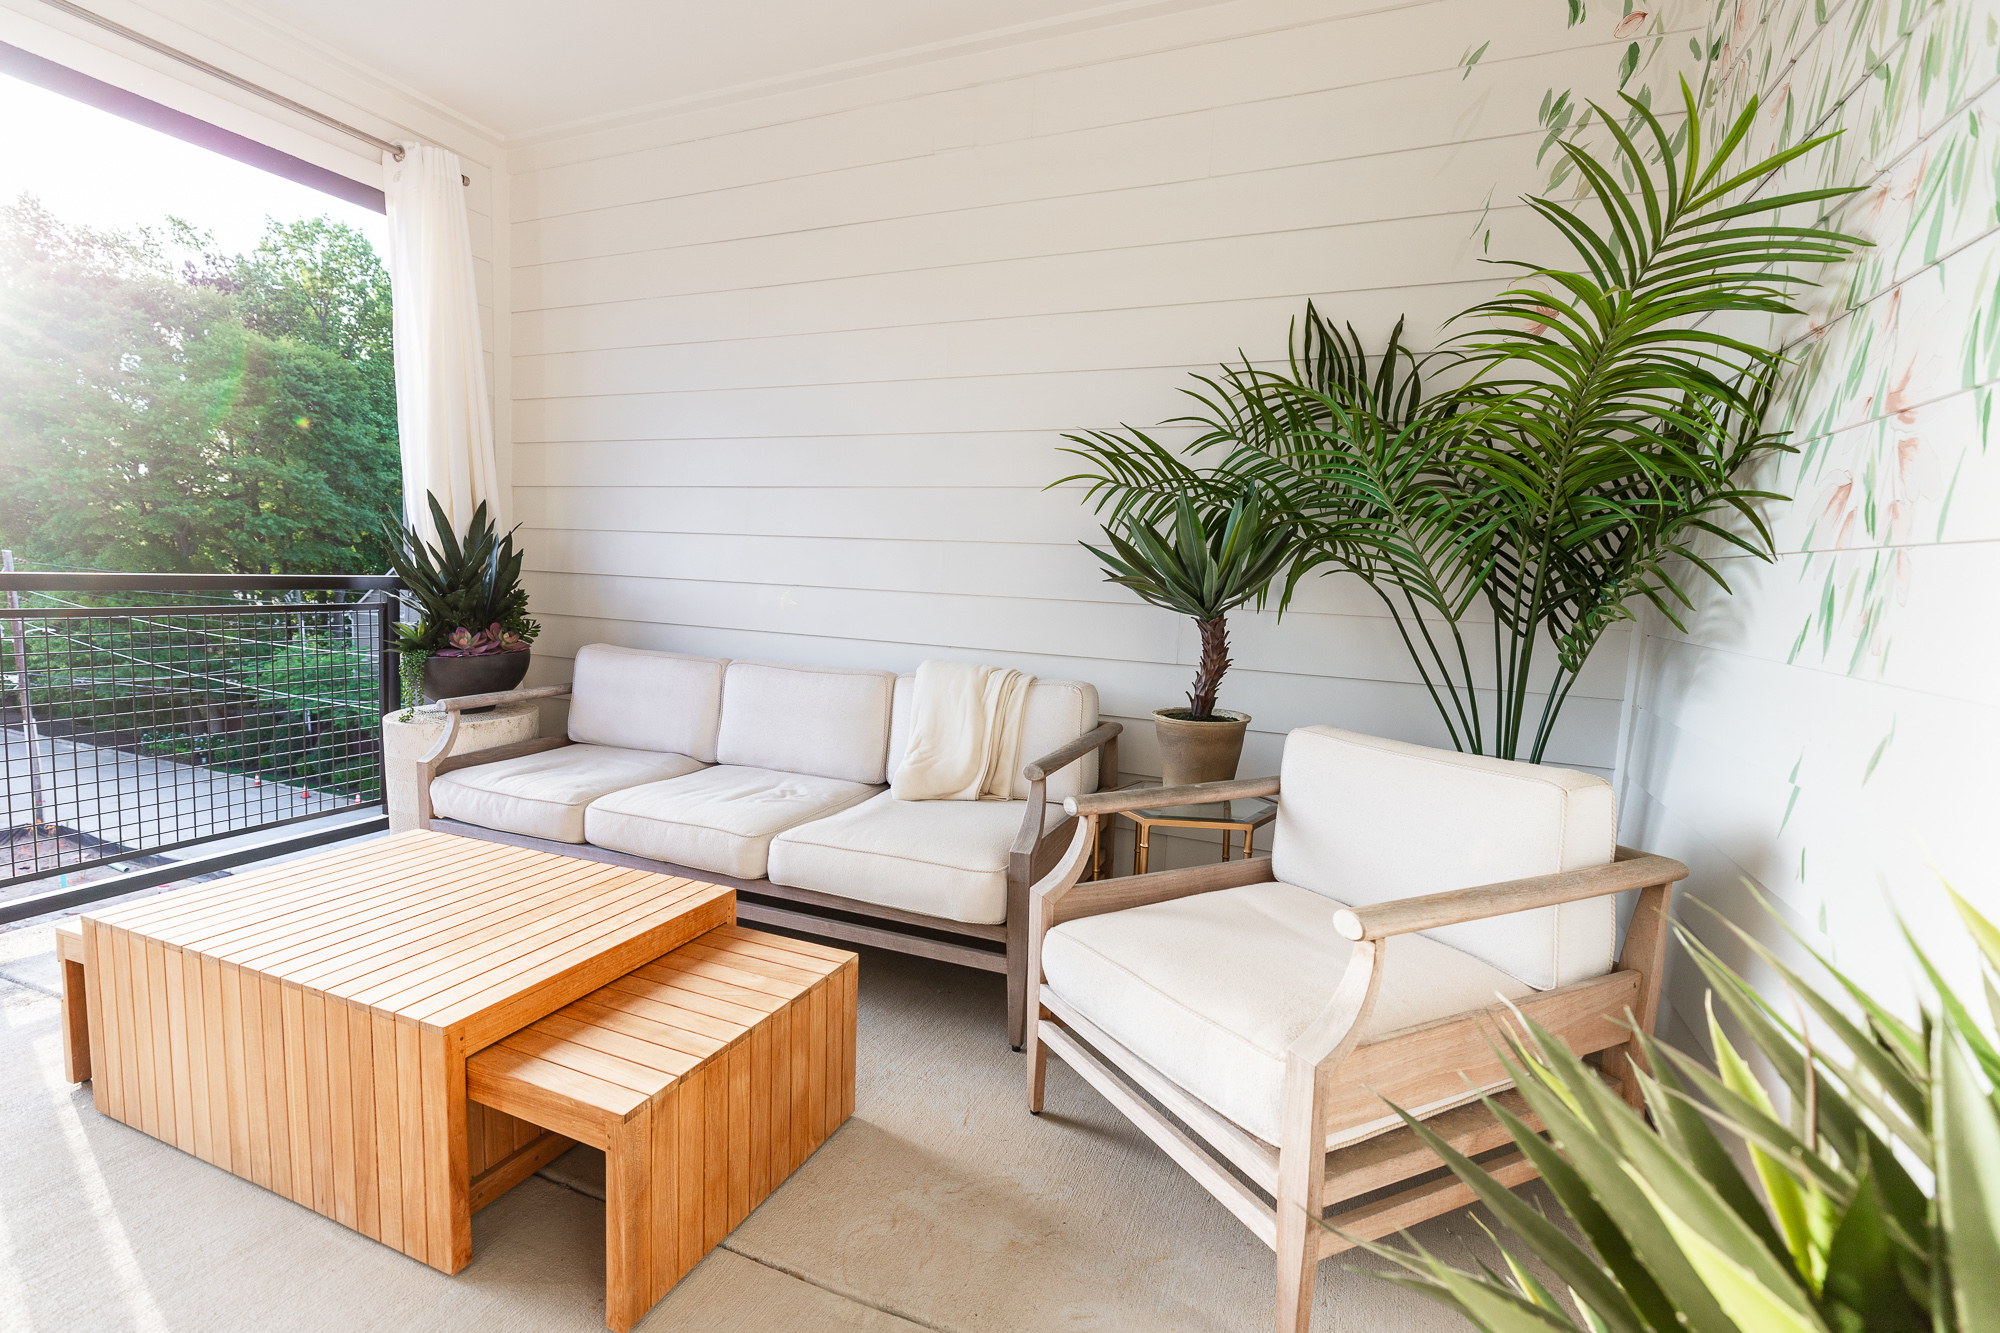 bringing a space to life with faux plants, the perks of faux plants, how to use faux plants in home decor, frontgate faux plants, styled faux plants